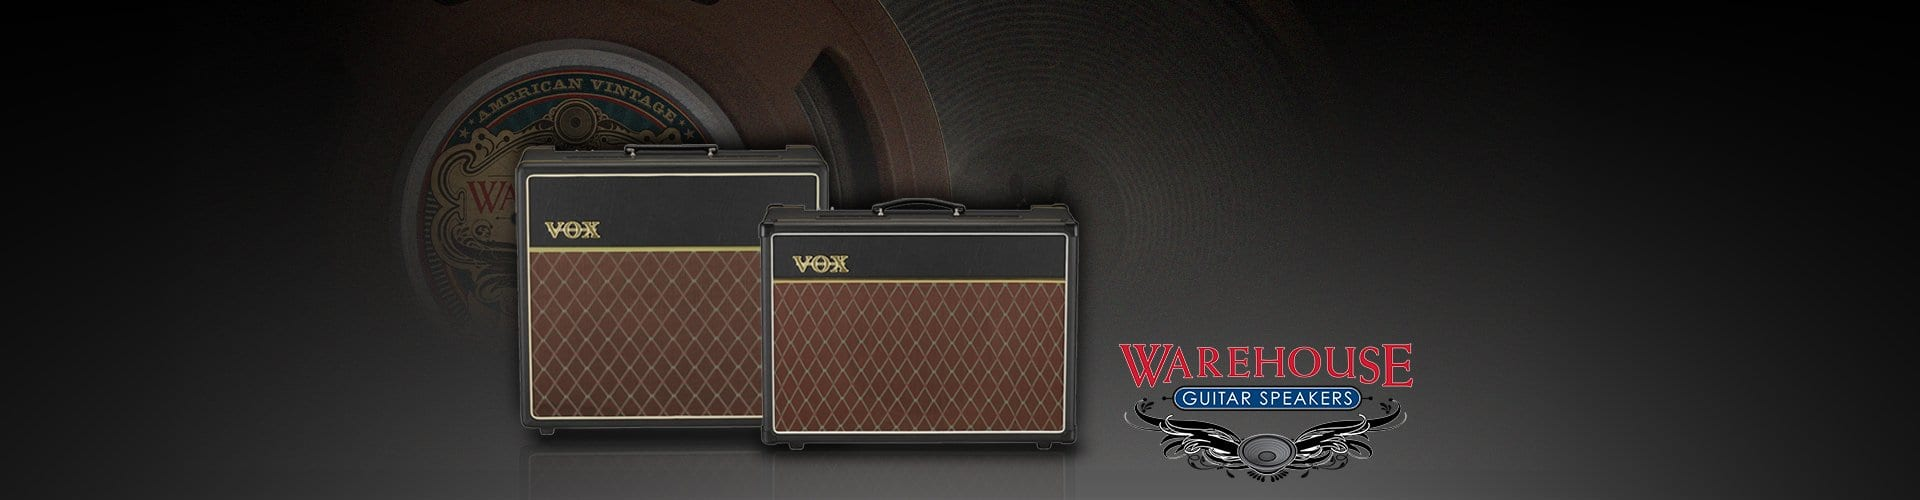 New Vox AC15 models with Warehouse speakers